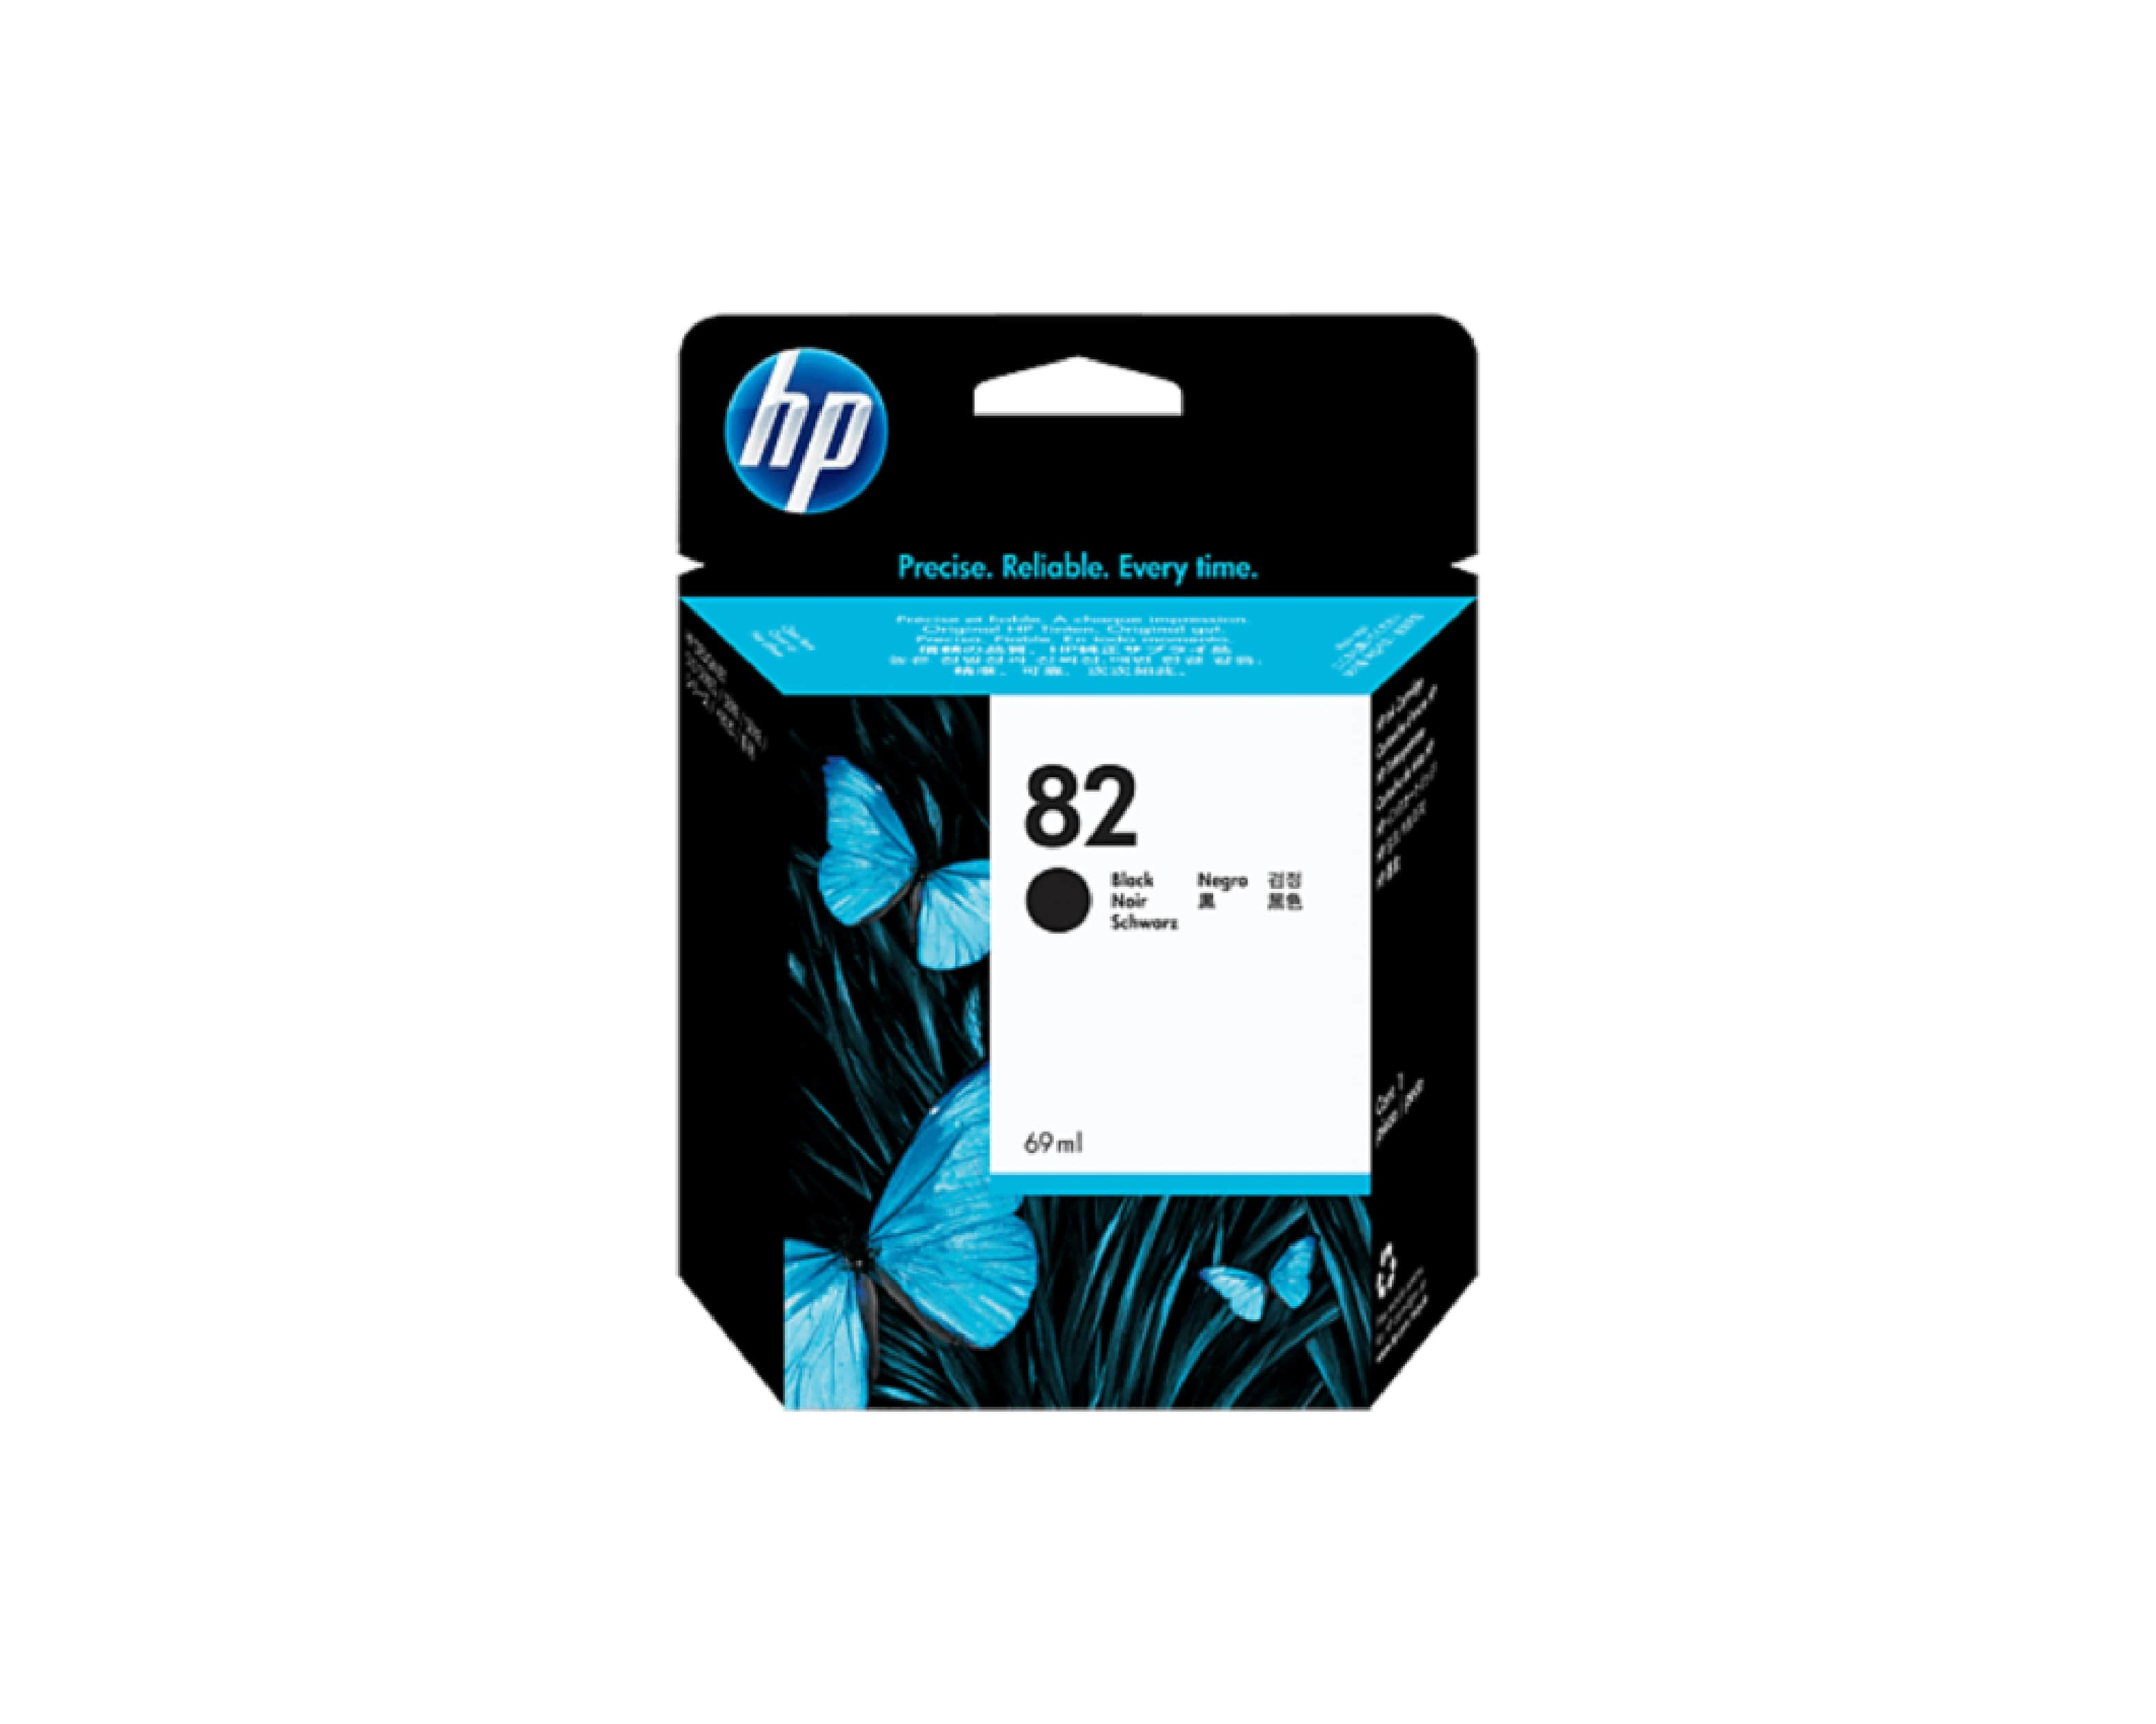 HP 82 DesignJet Ink Cartridge Black 69 ml